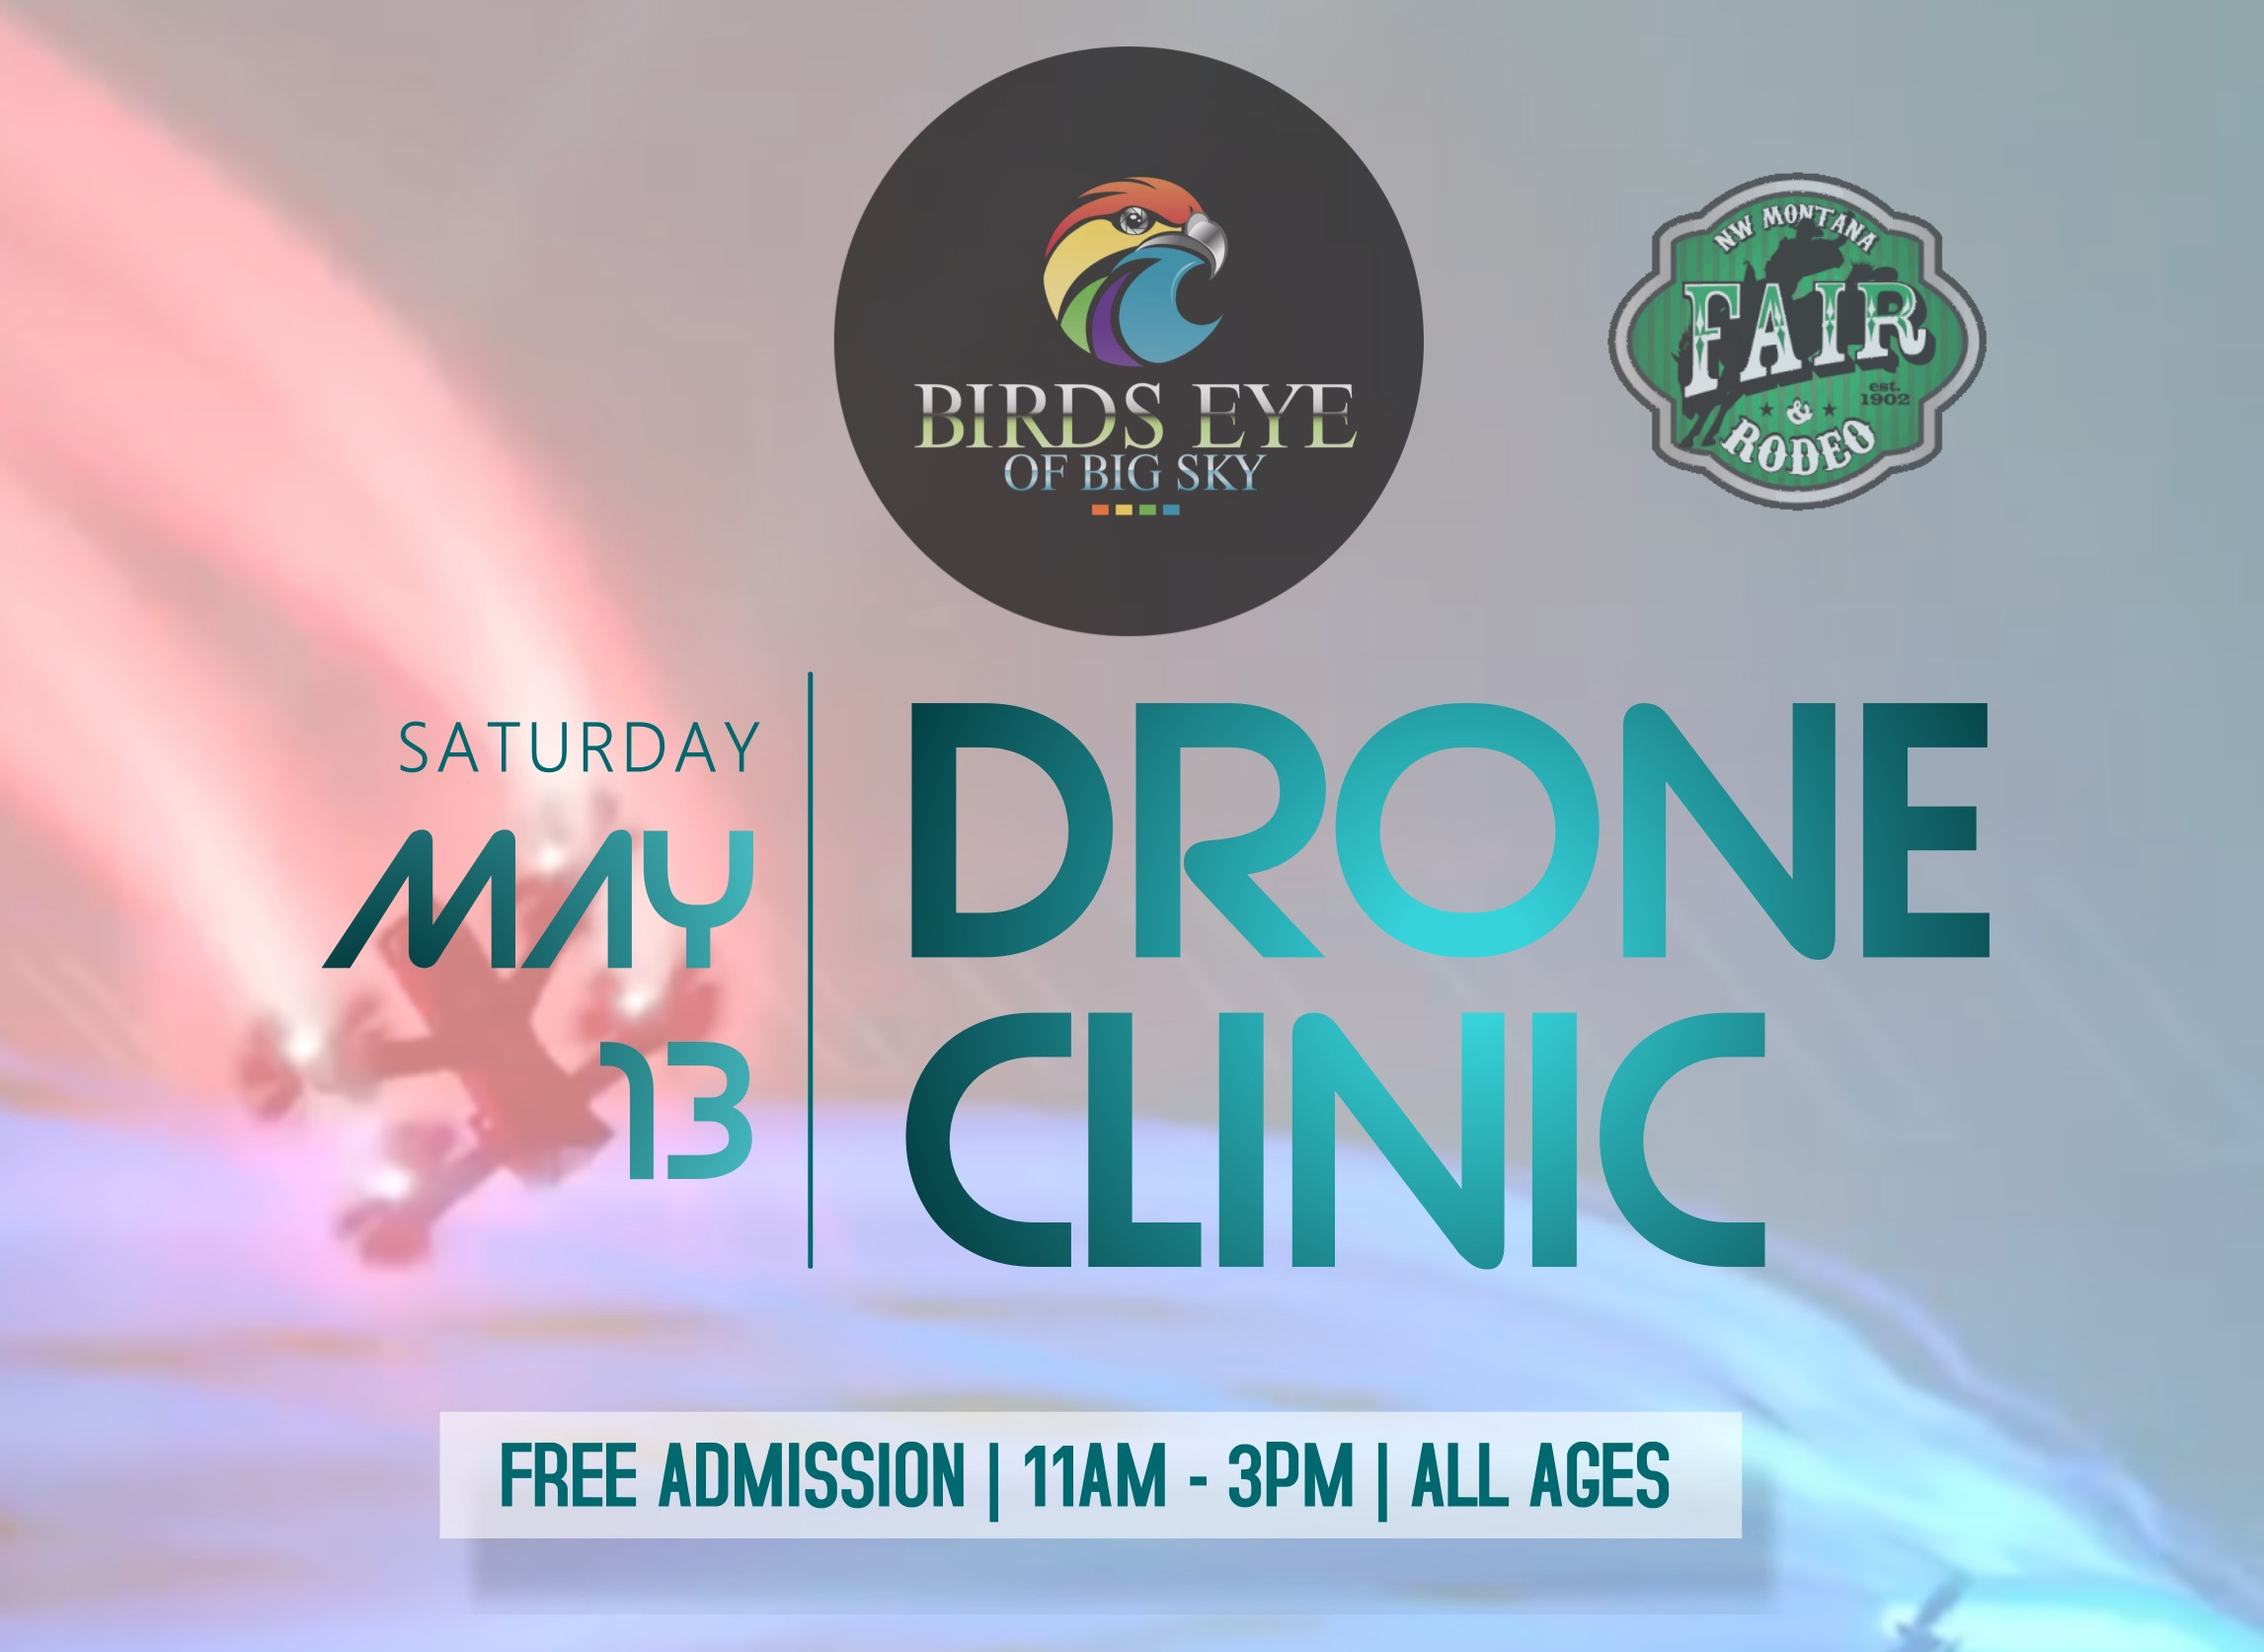 Birds Eye of Big Sky will talk about how drones are currently being used in various industries to improve workforce opportunity, basic regulations on recreational or commercial flight, and how mindful drone flight can help manage stress.